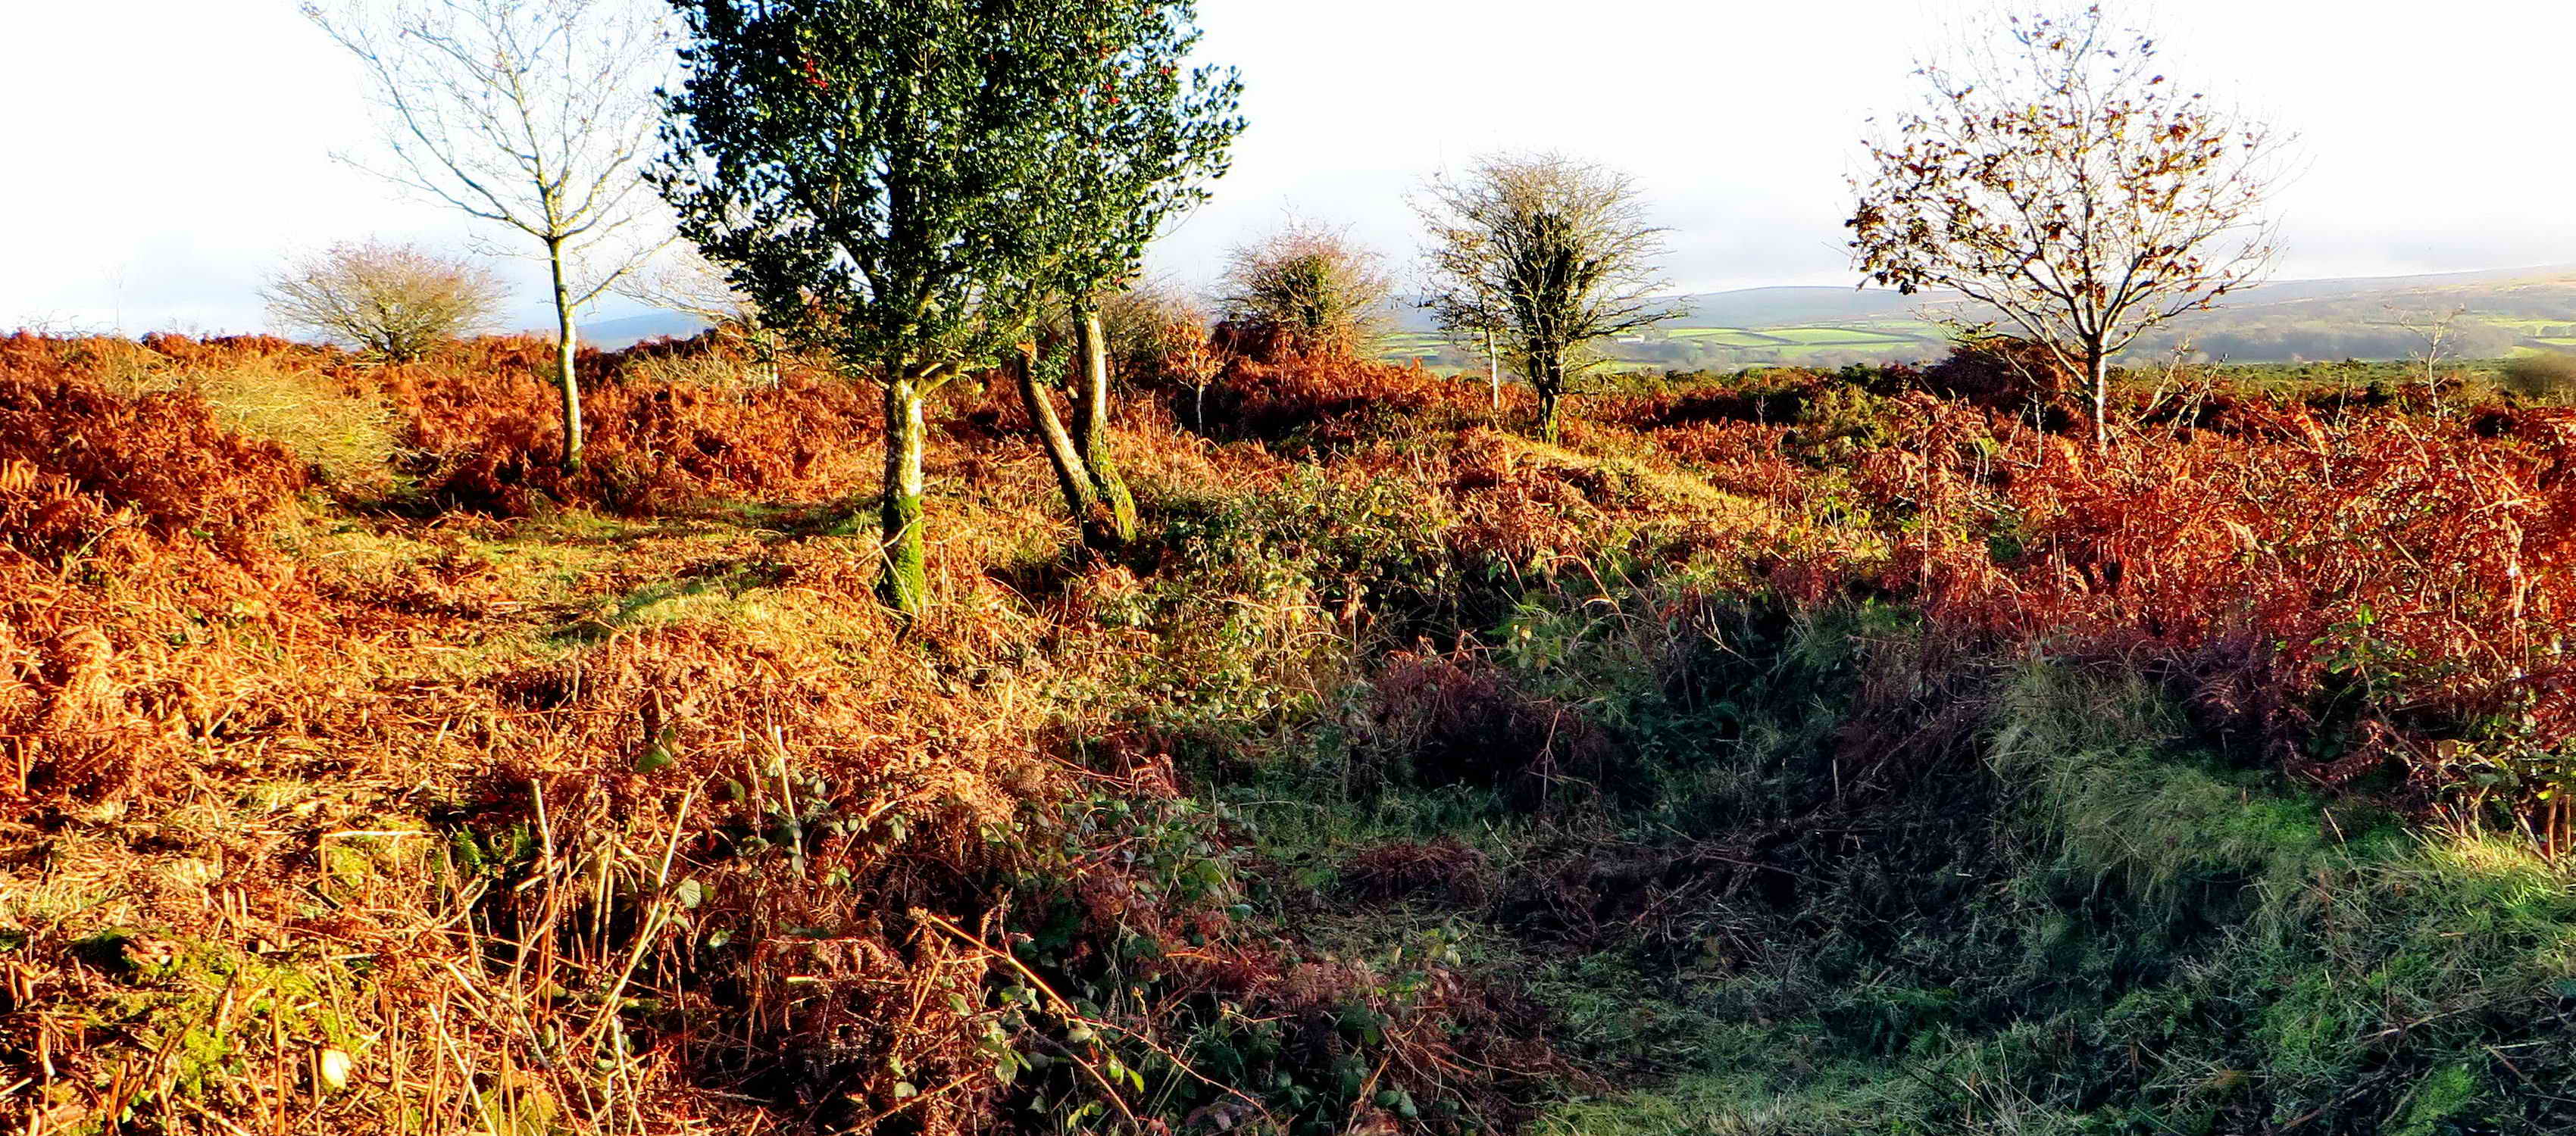 Looking the other way - at the section that needed to be cleared.  Note the holly tree, it appears in the last photograph.